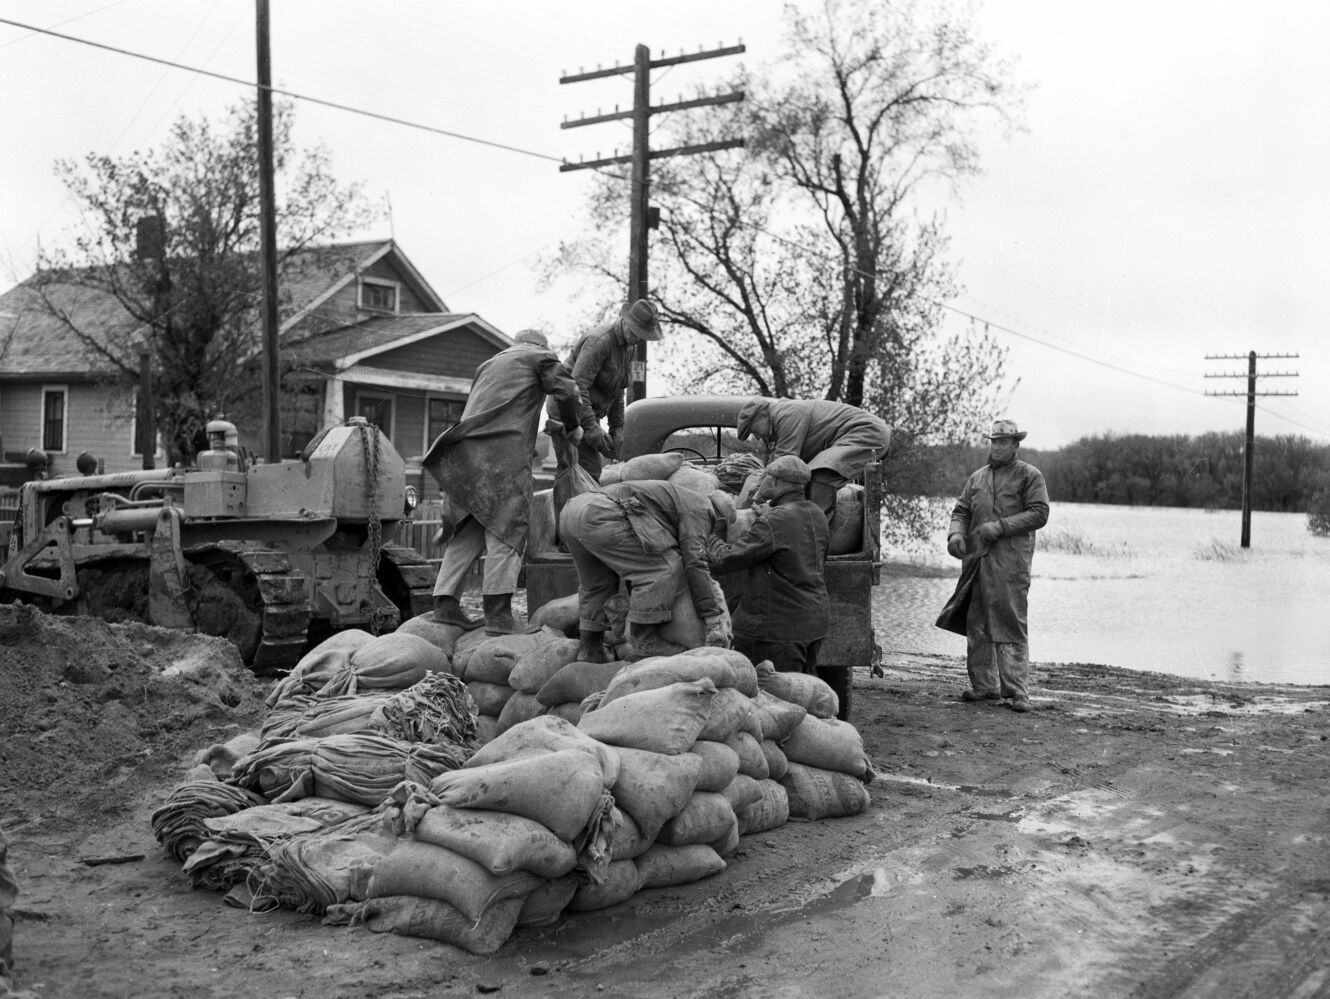 Workers load sandbags into a truck to fight the 1954 flood. (Courtesy CKX fonds; S.J. McKee Archives; Brandon University)